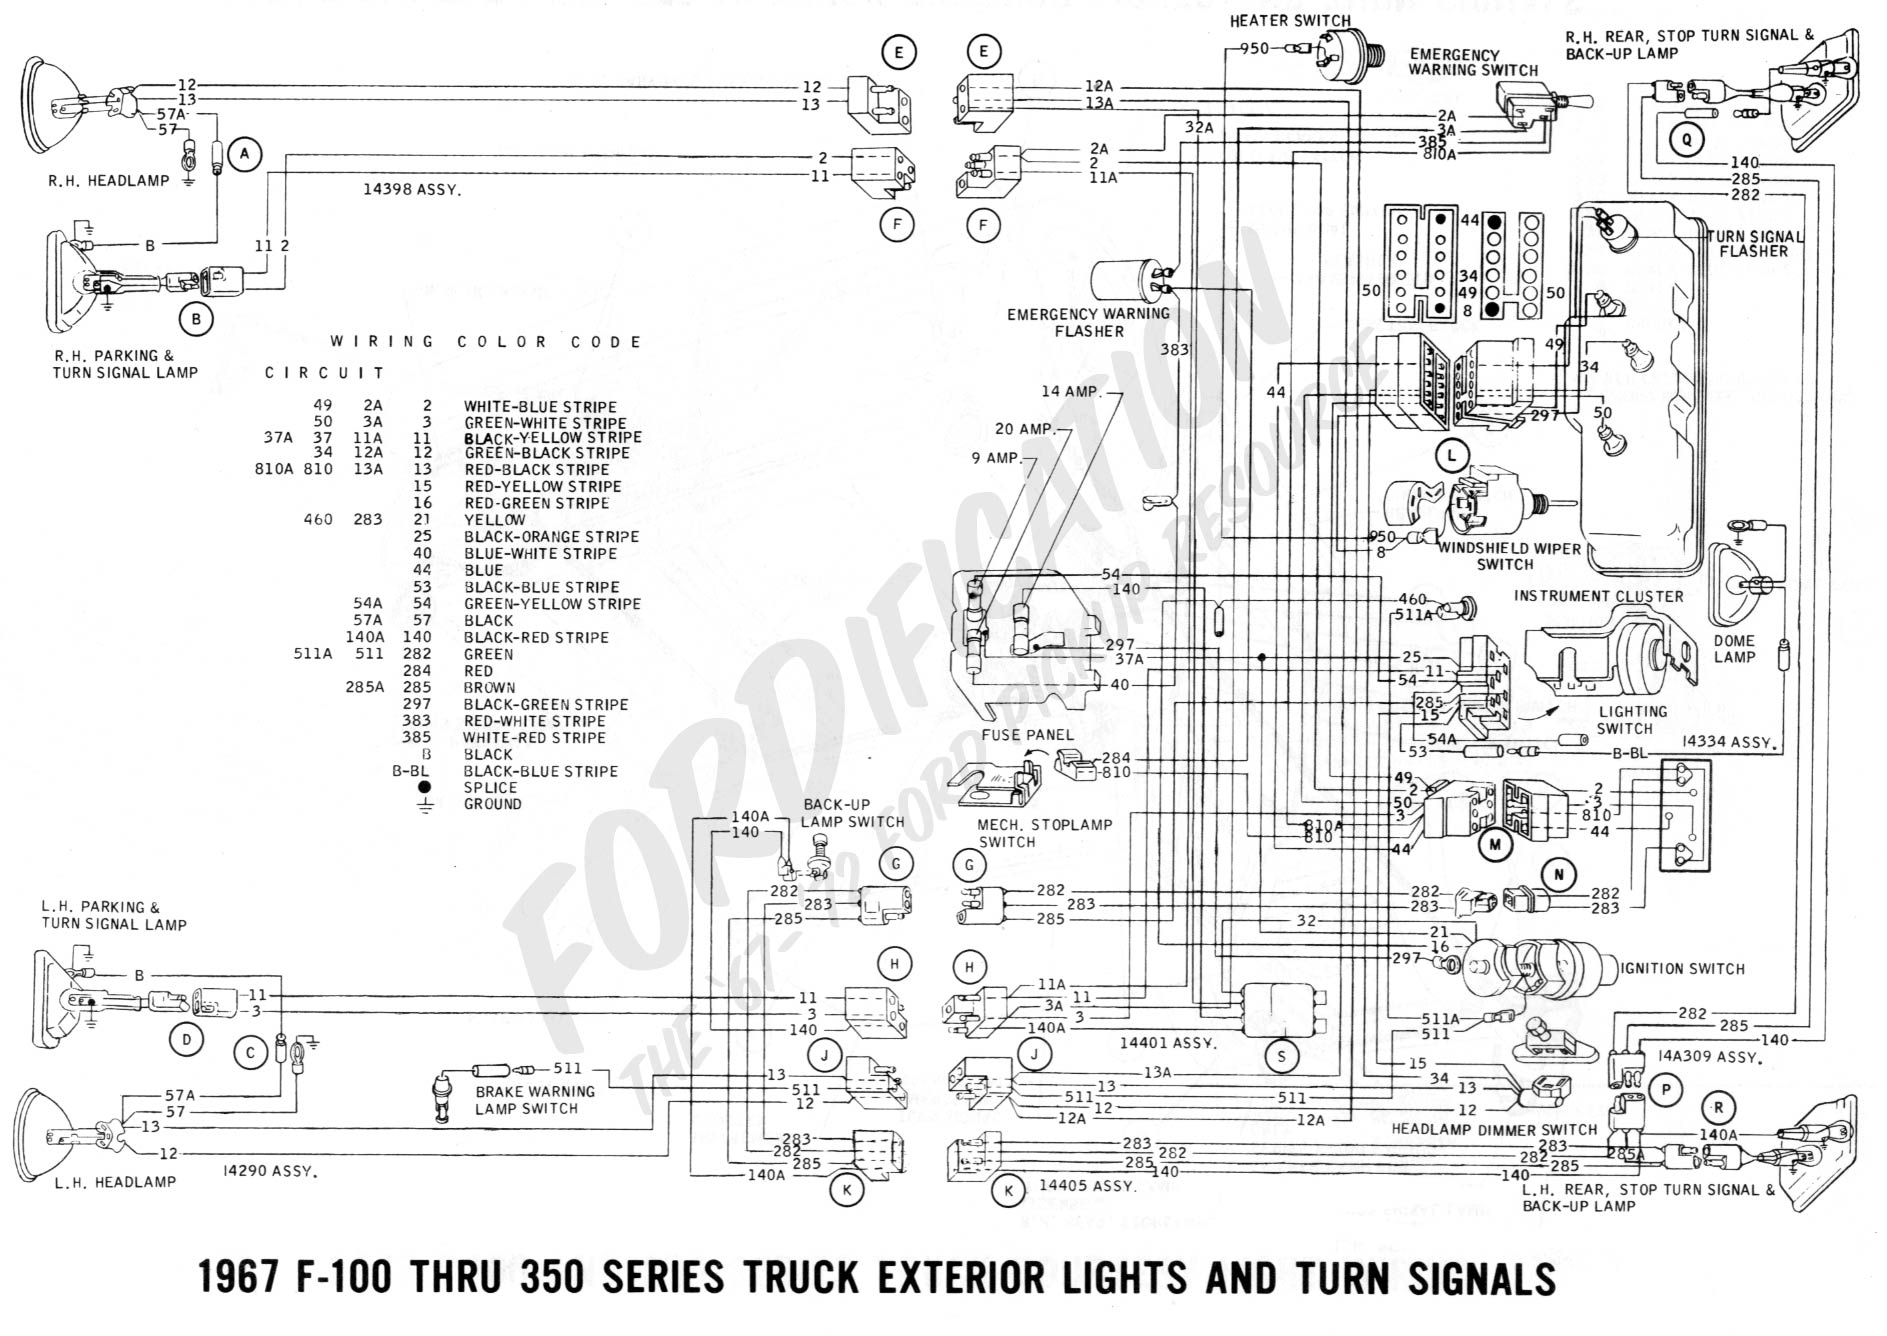 2001 sterling wiring diagrams start switch